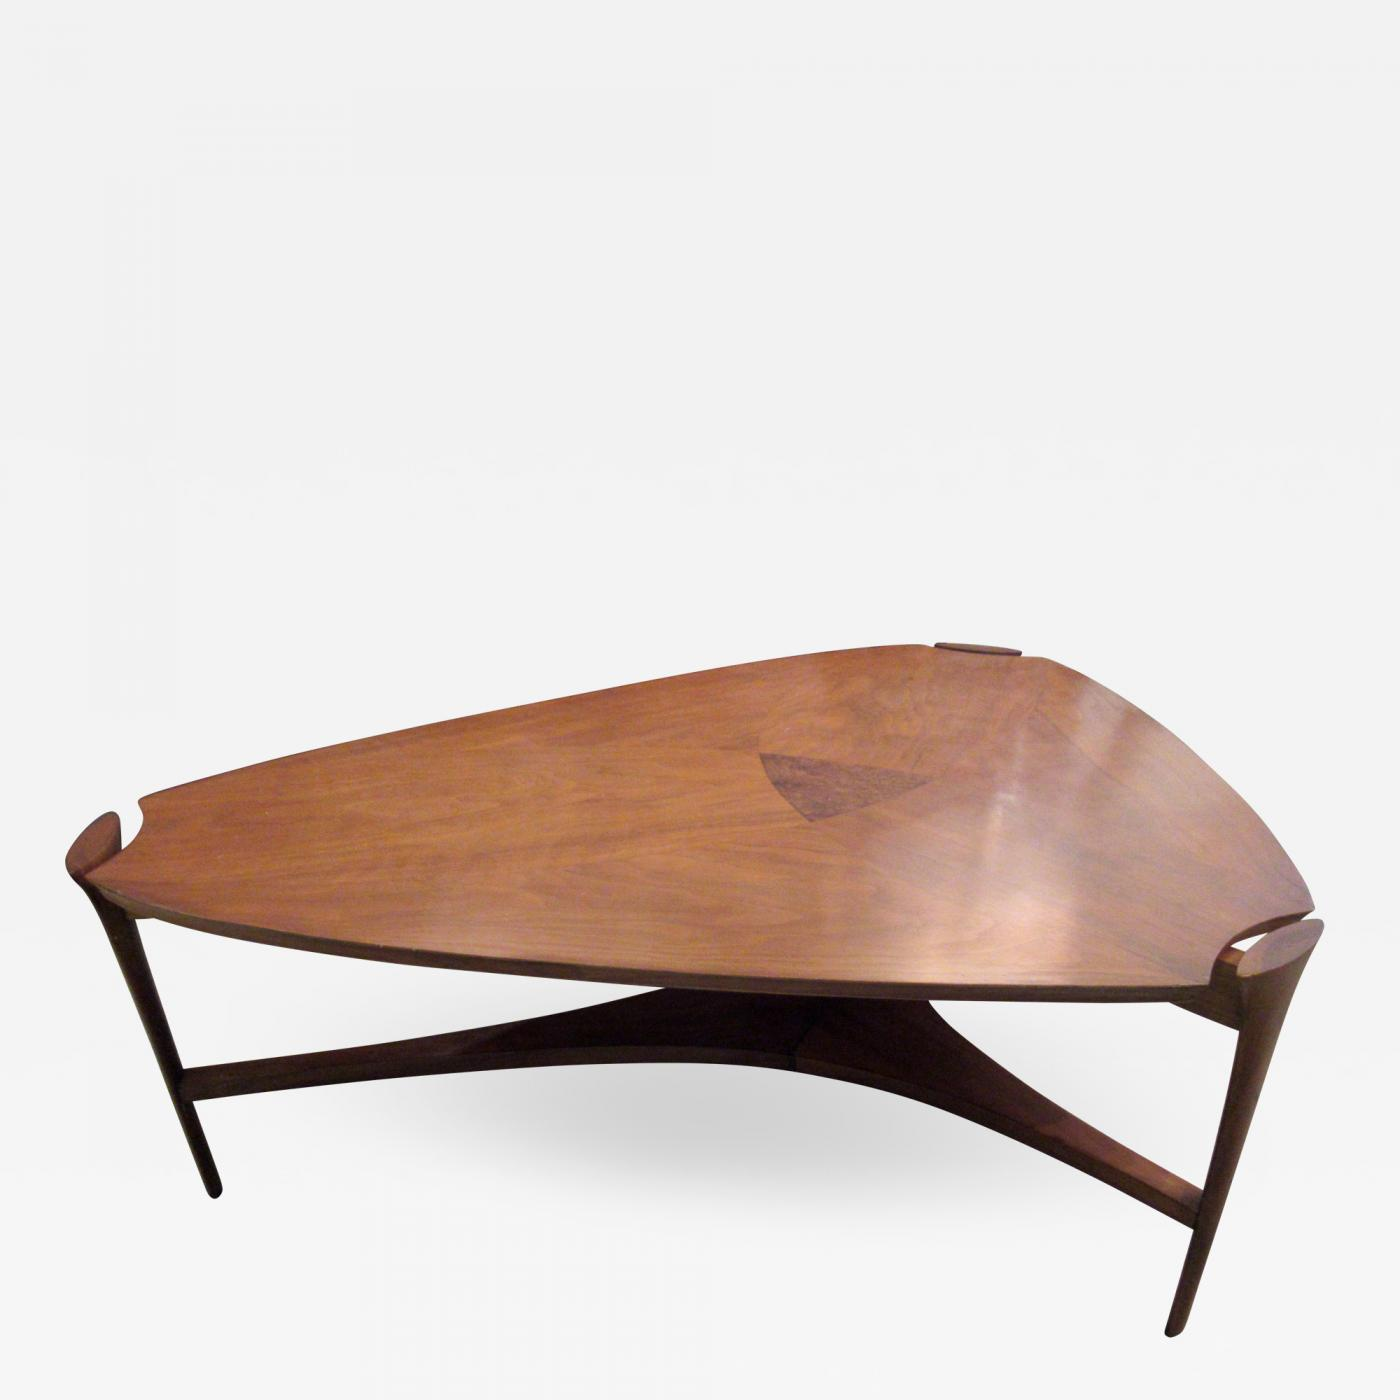 henry p glass american modern coffee table henry glass for sj campbell